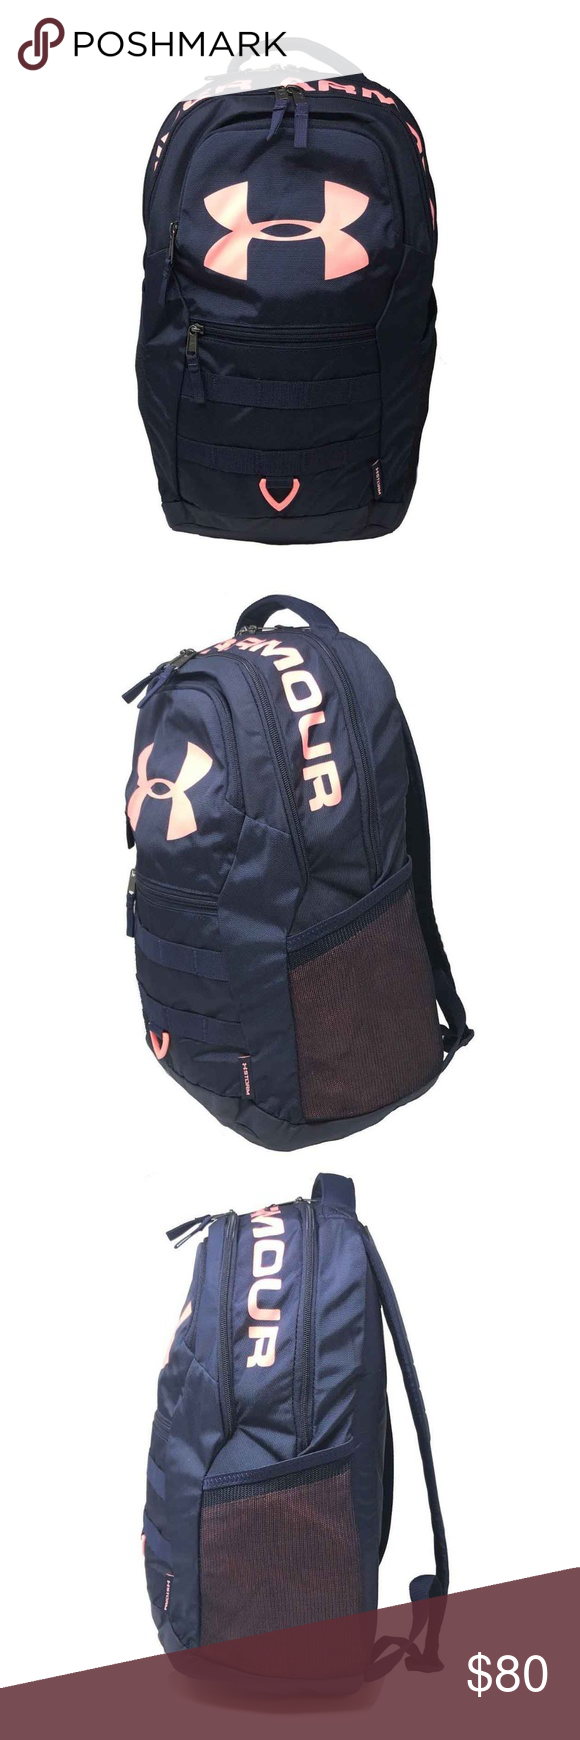 Under Armour Unisex Big Logo 5.0 BackPack Under Armour Unisex Big Logo 5.0  BackPack Strom Water Resistant Color Navy Coral Item  273428066268 100%  Authentic ... 53cdfe6795